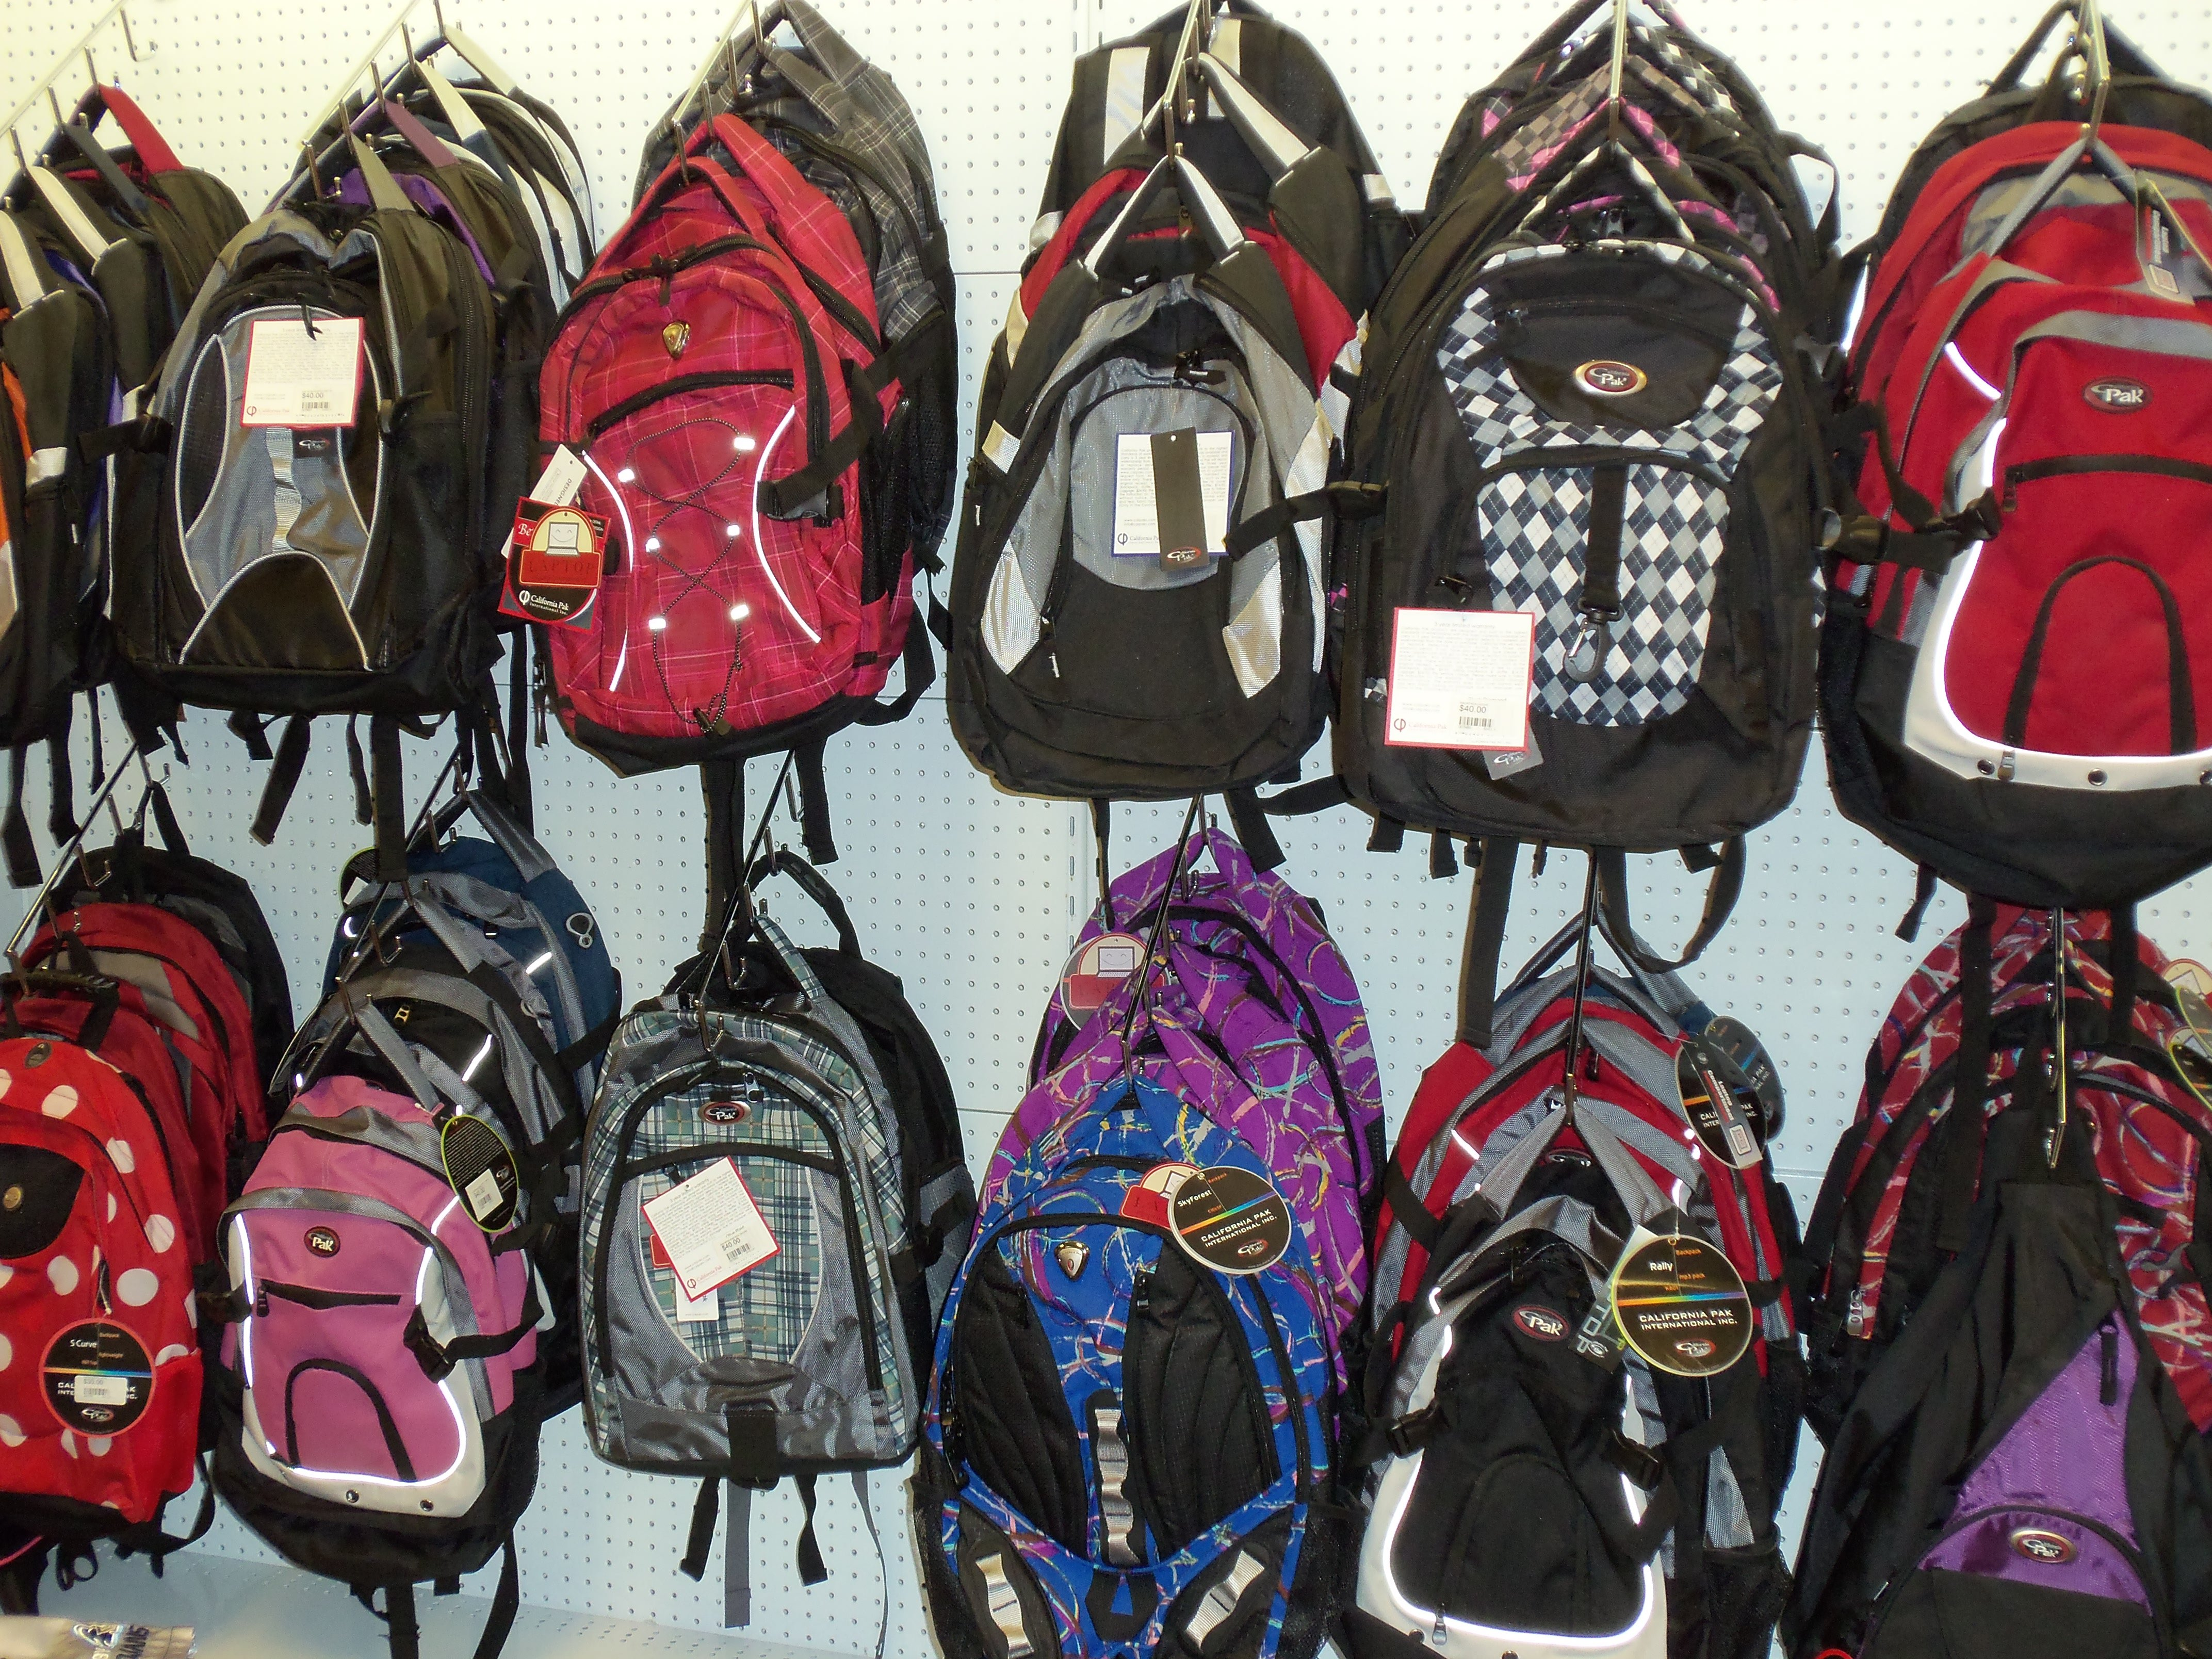 Backpacks for sale in bookstore.